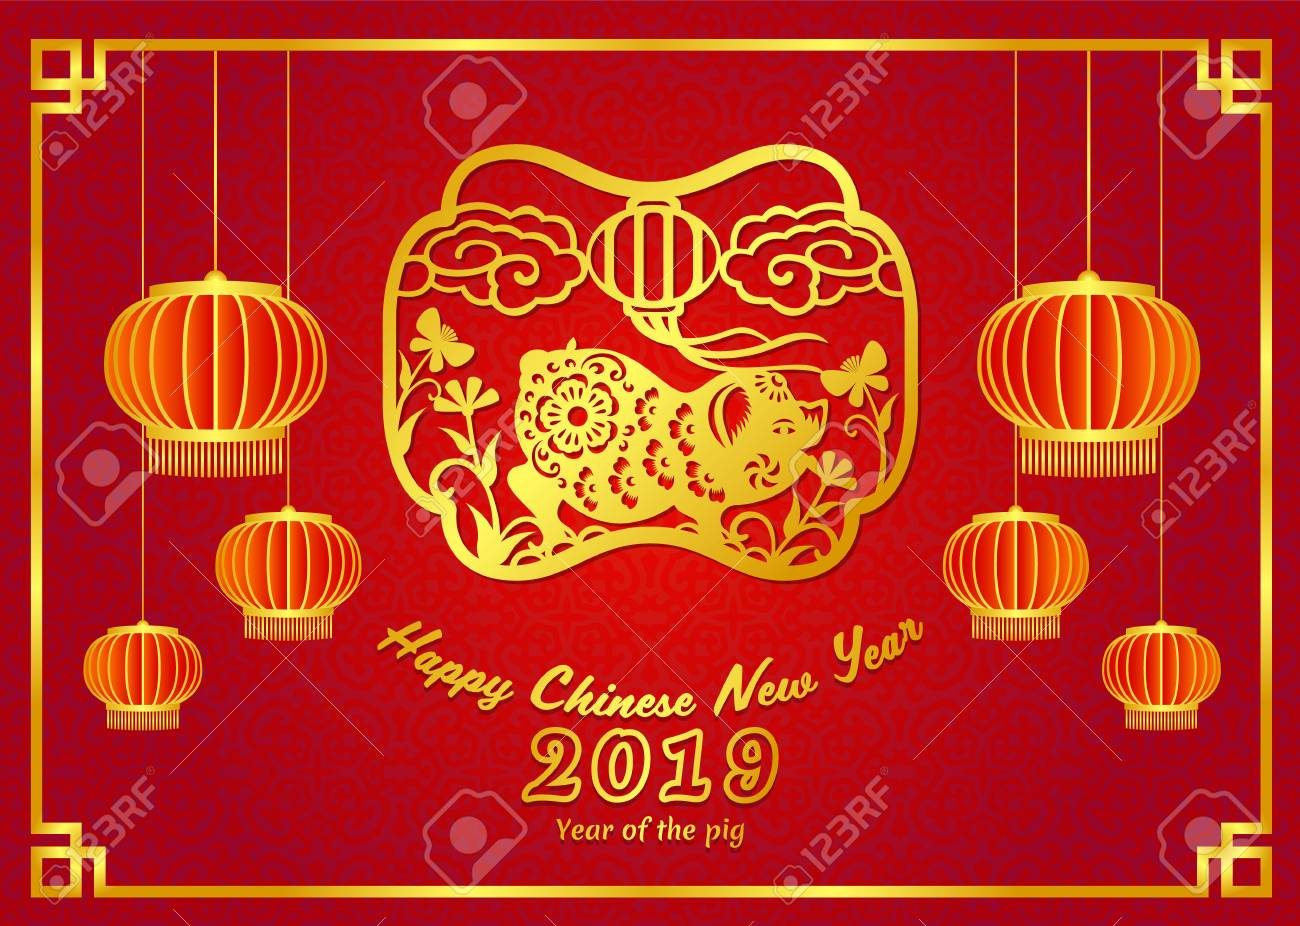 Happy Chinese New Year 2019 Card With Gold Pig Zodiac Sign And